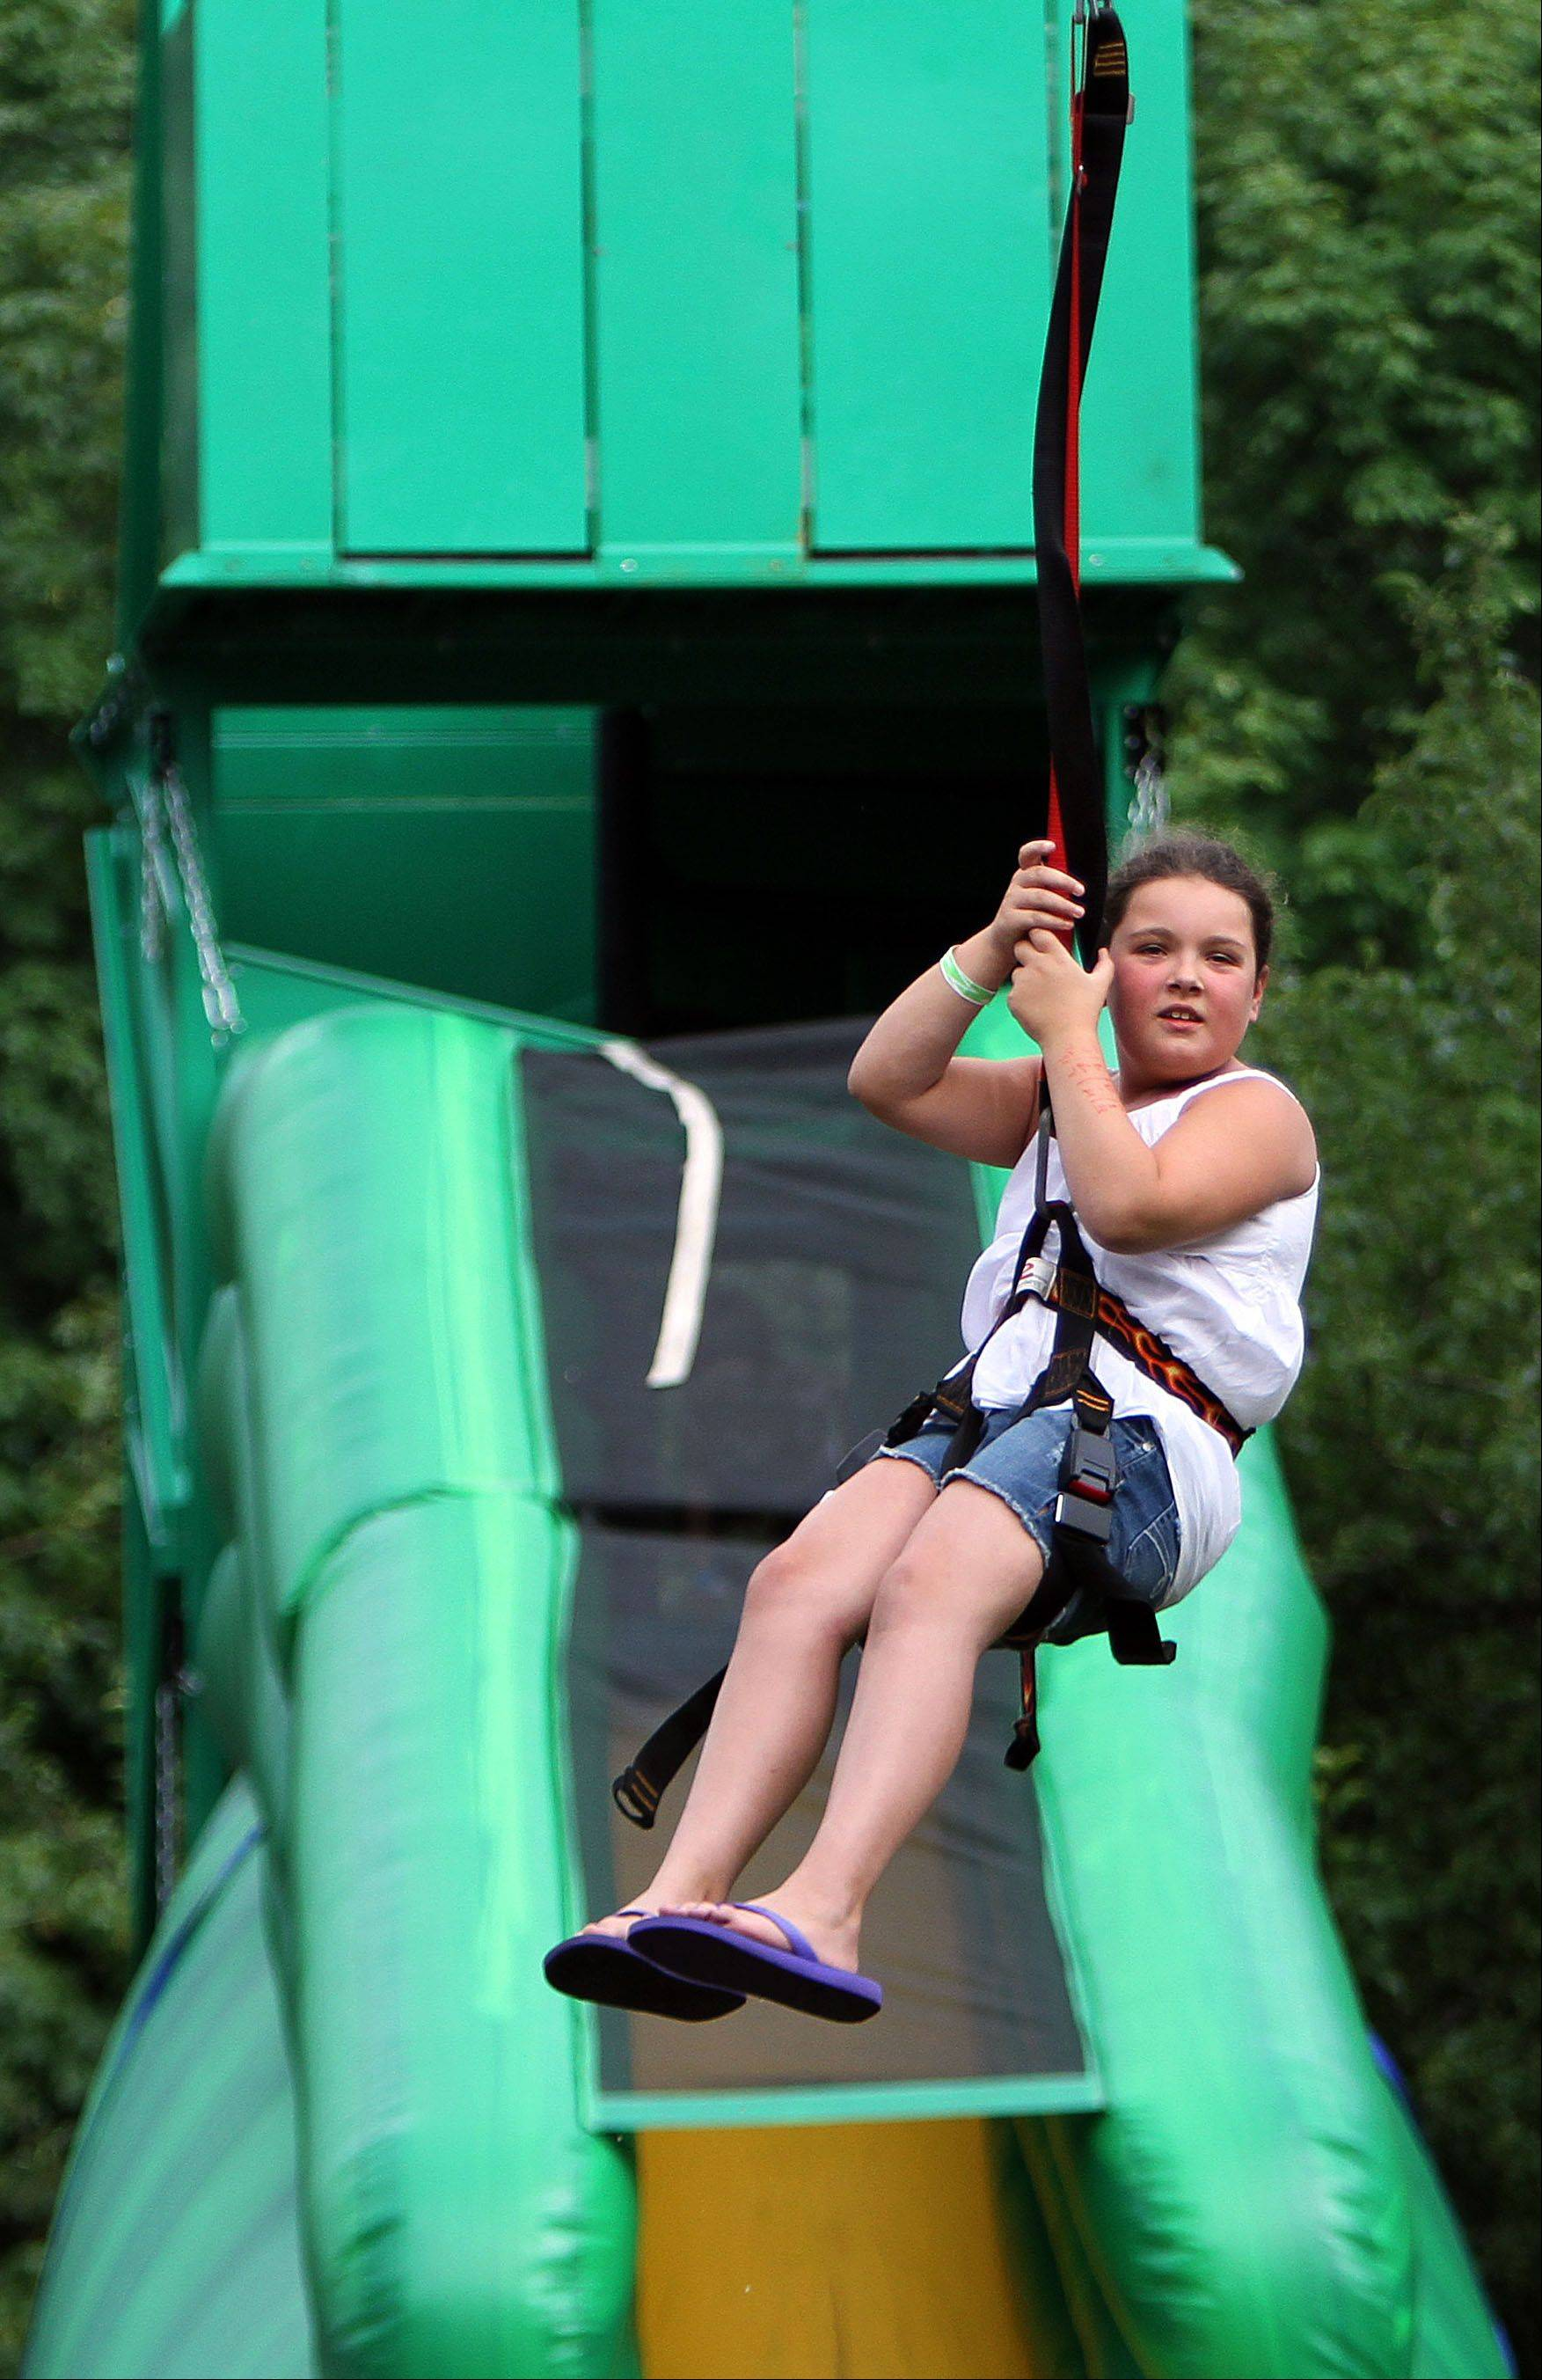 Eight-year-old Kaitlin Driscoll of Lincolnshire tries out a zip line during Lincolnshire's Red, White & Boom celebration Wednesday in Spring Lake Park.